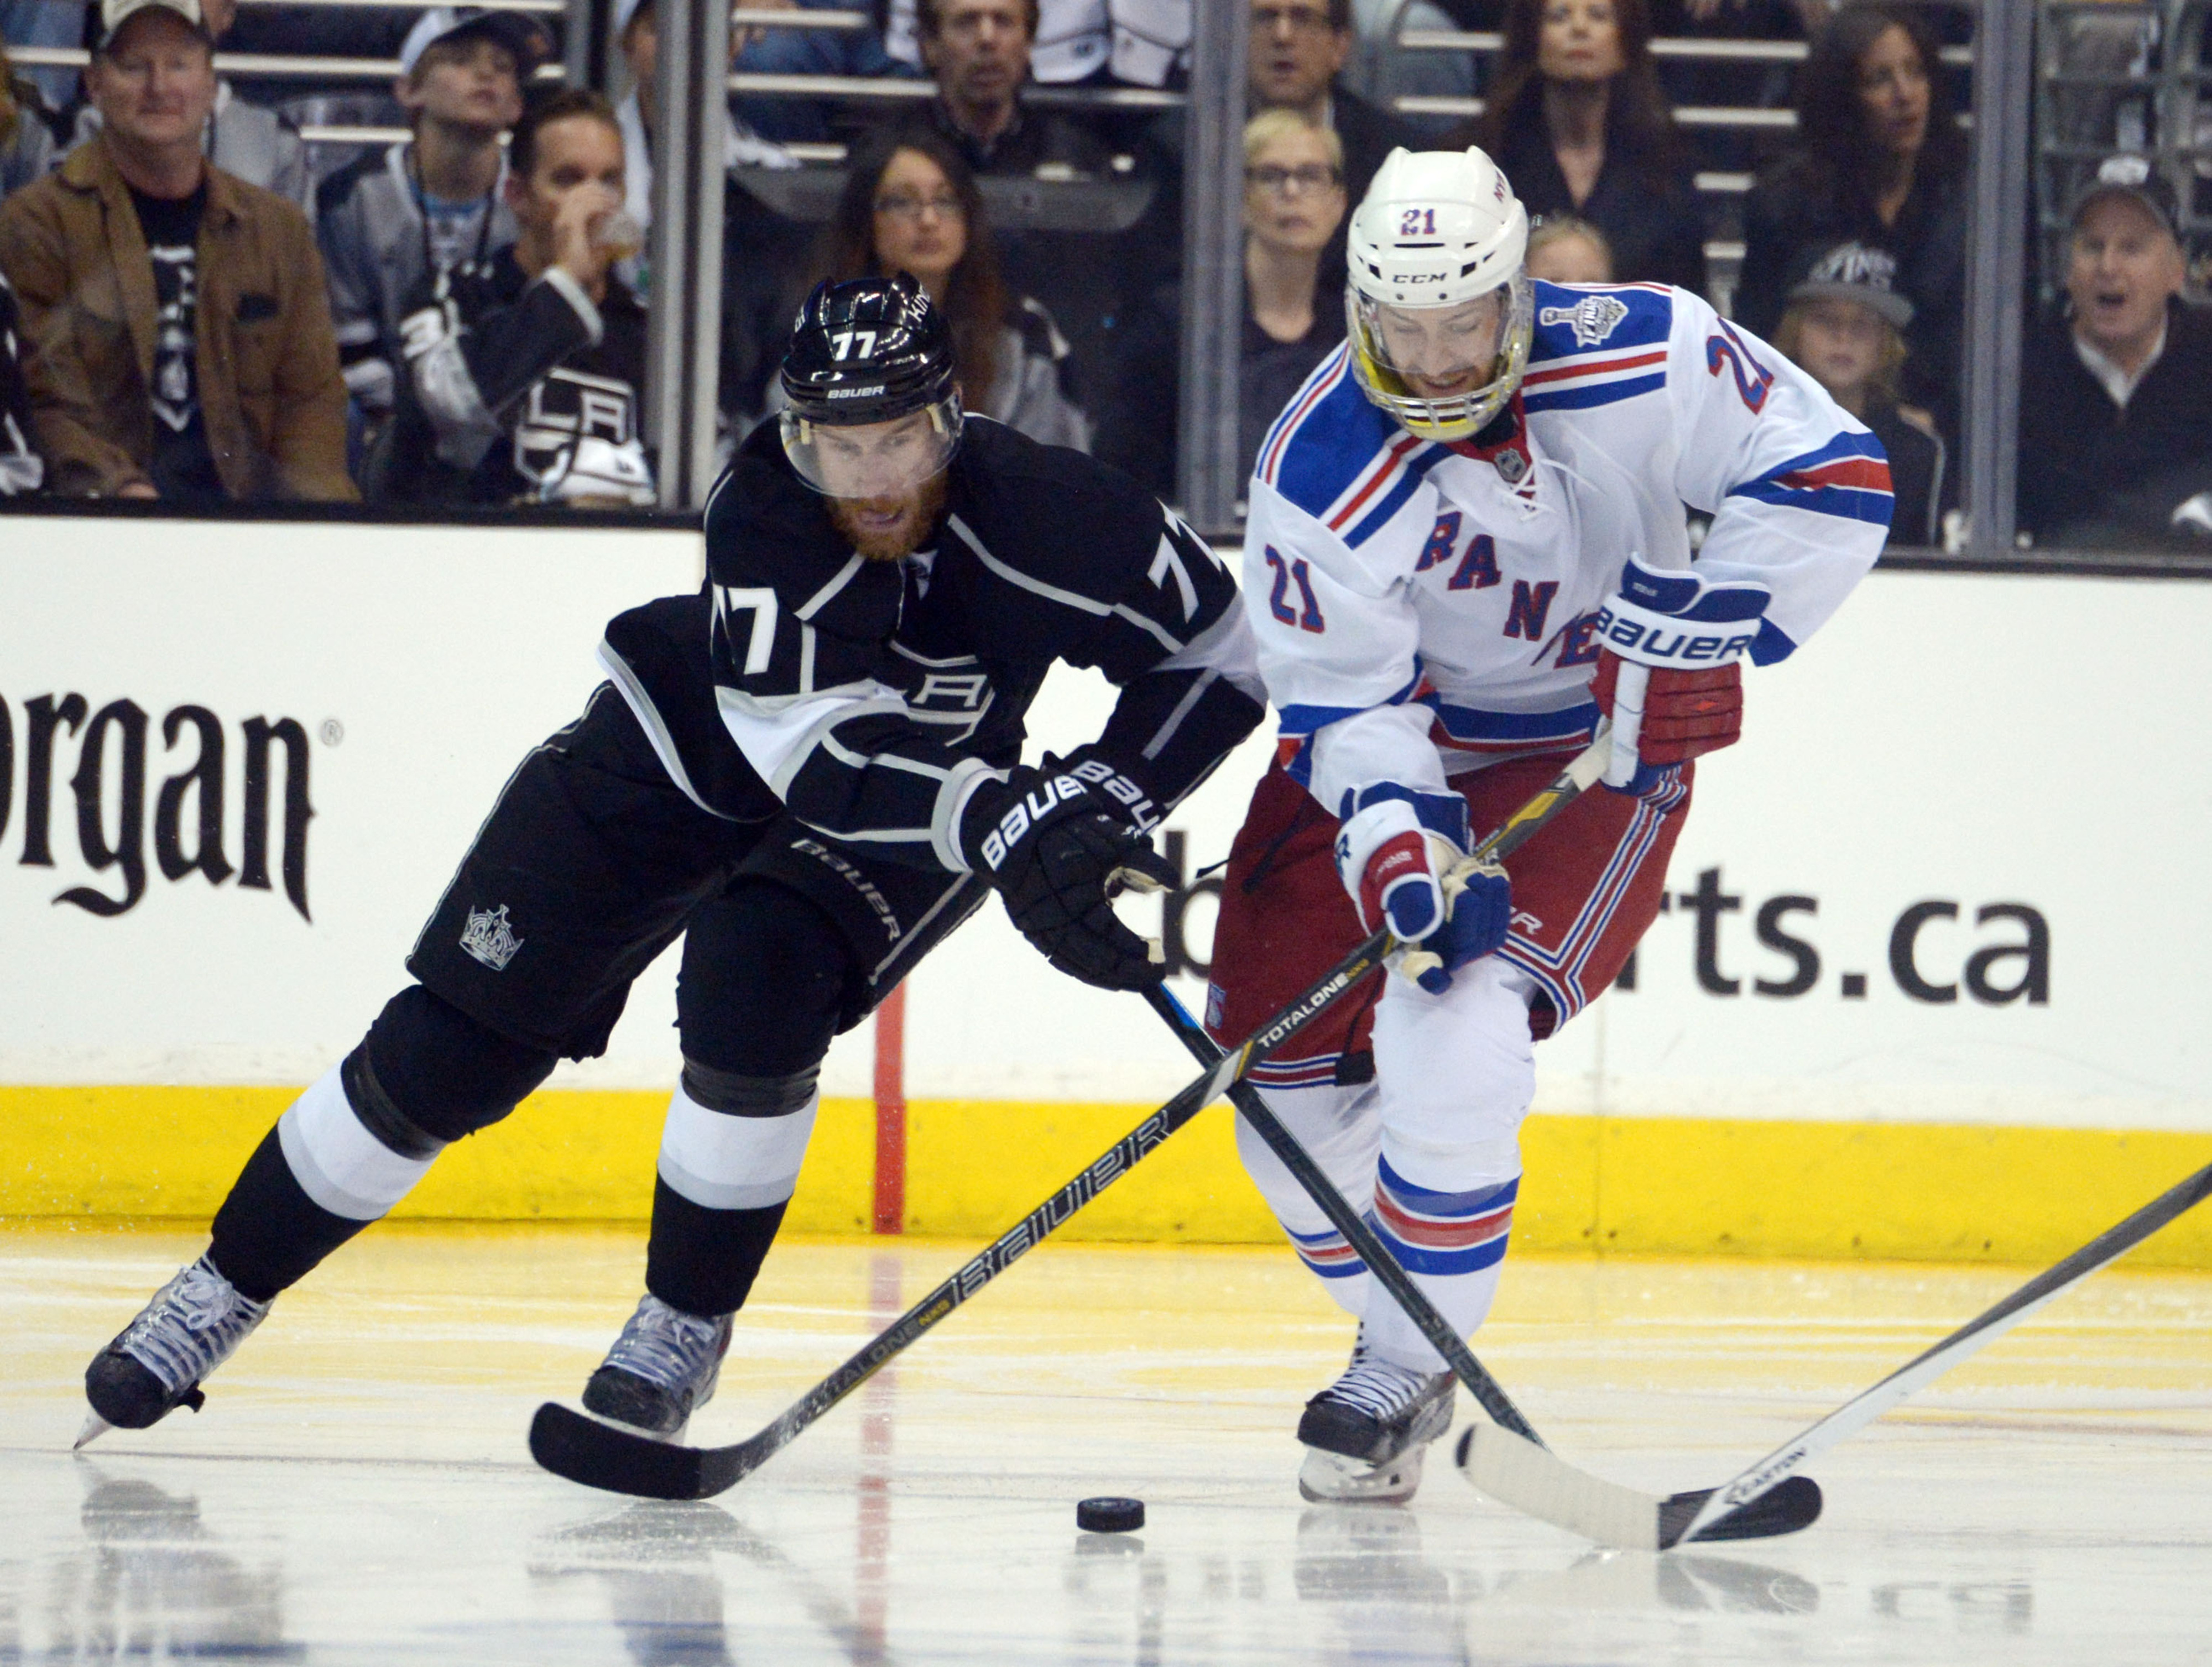 derek stepan tries to learn how to hockey from an actually good player